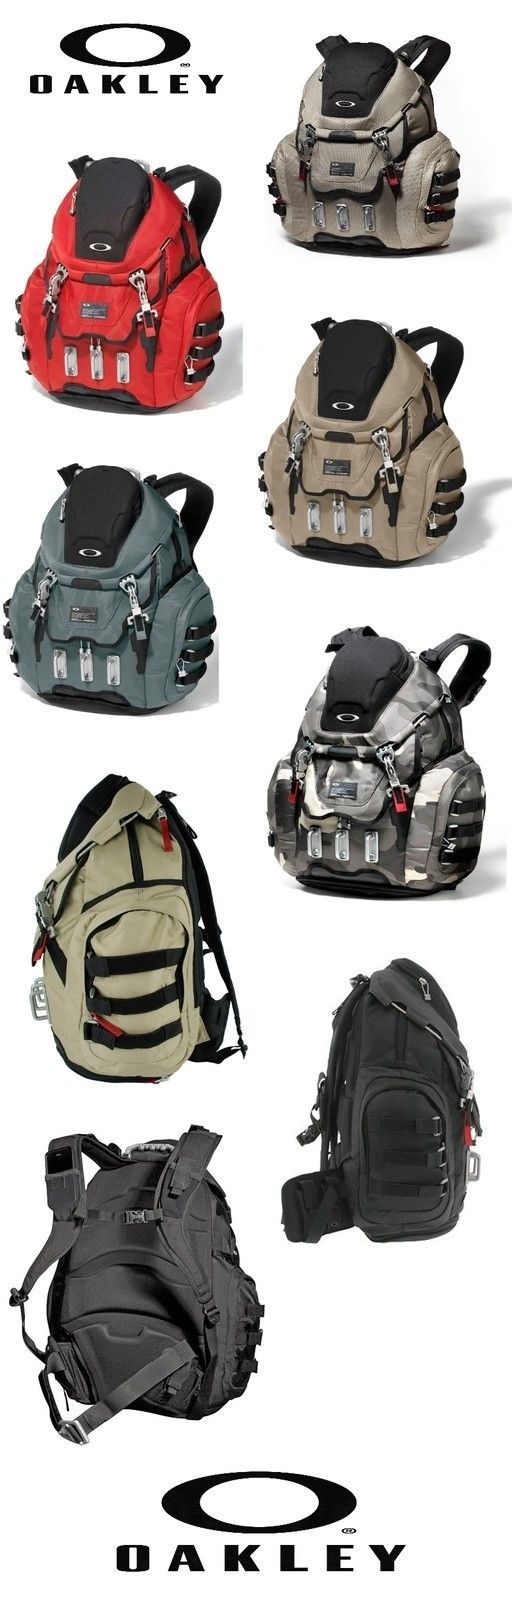 New pack - Oakley-Kitchen-Sink-Backpack-13.jpg